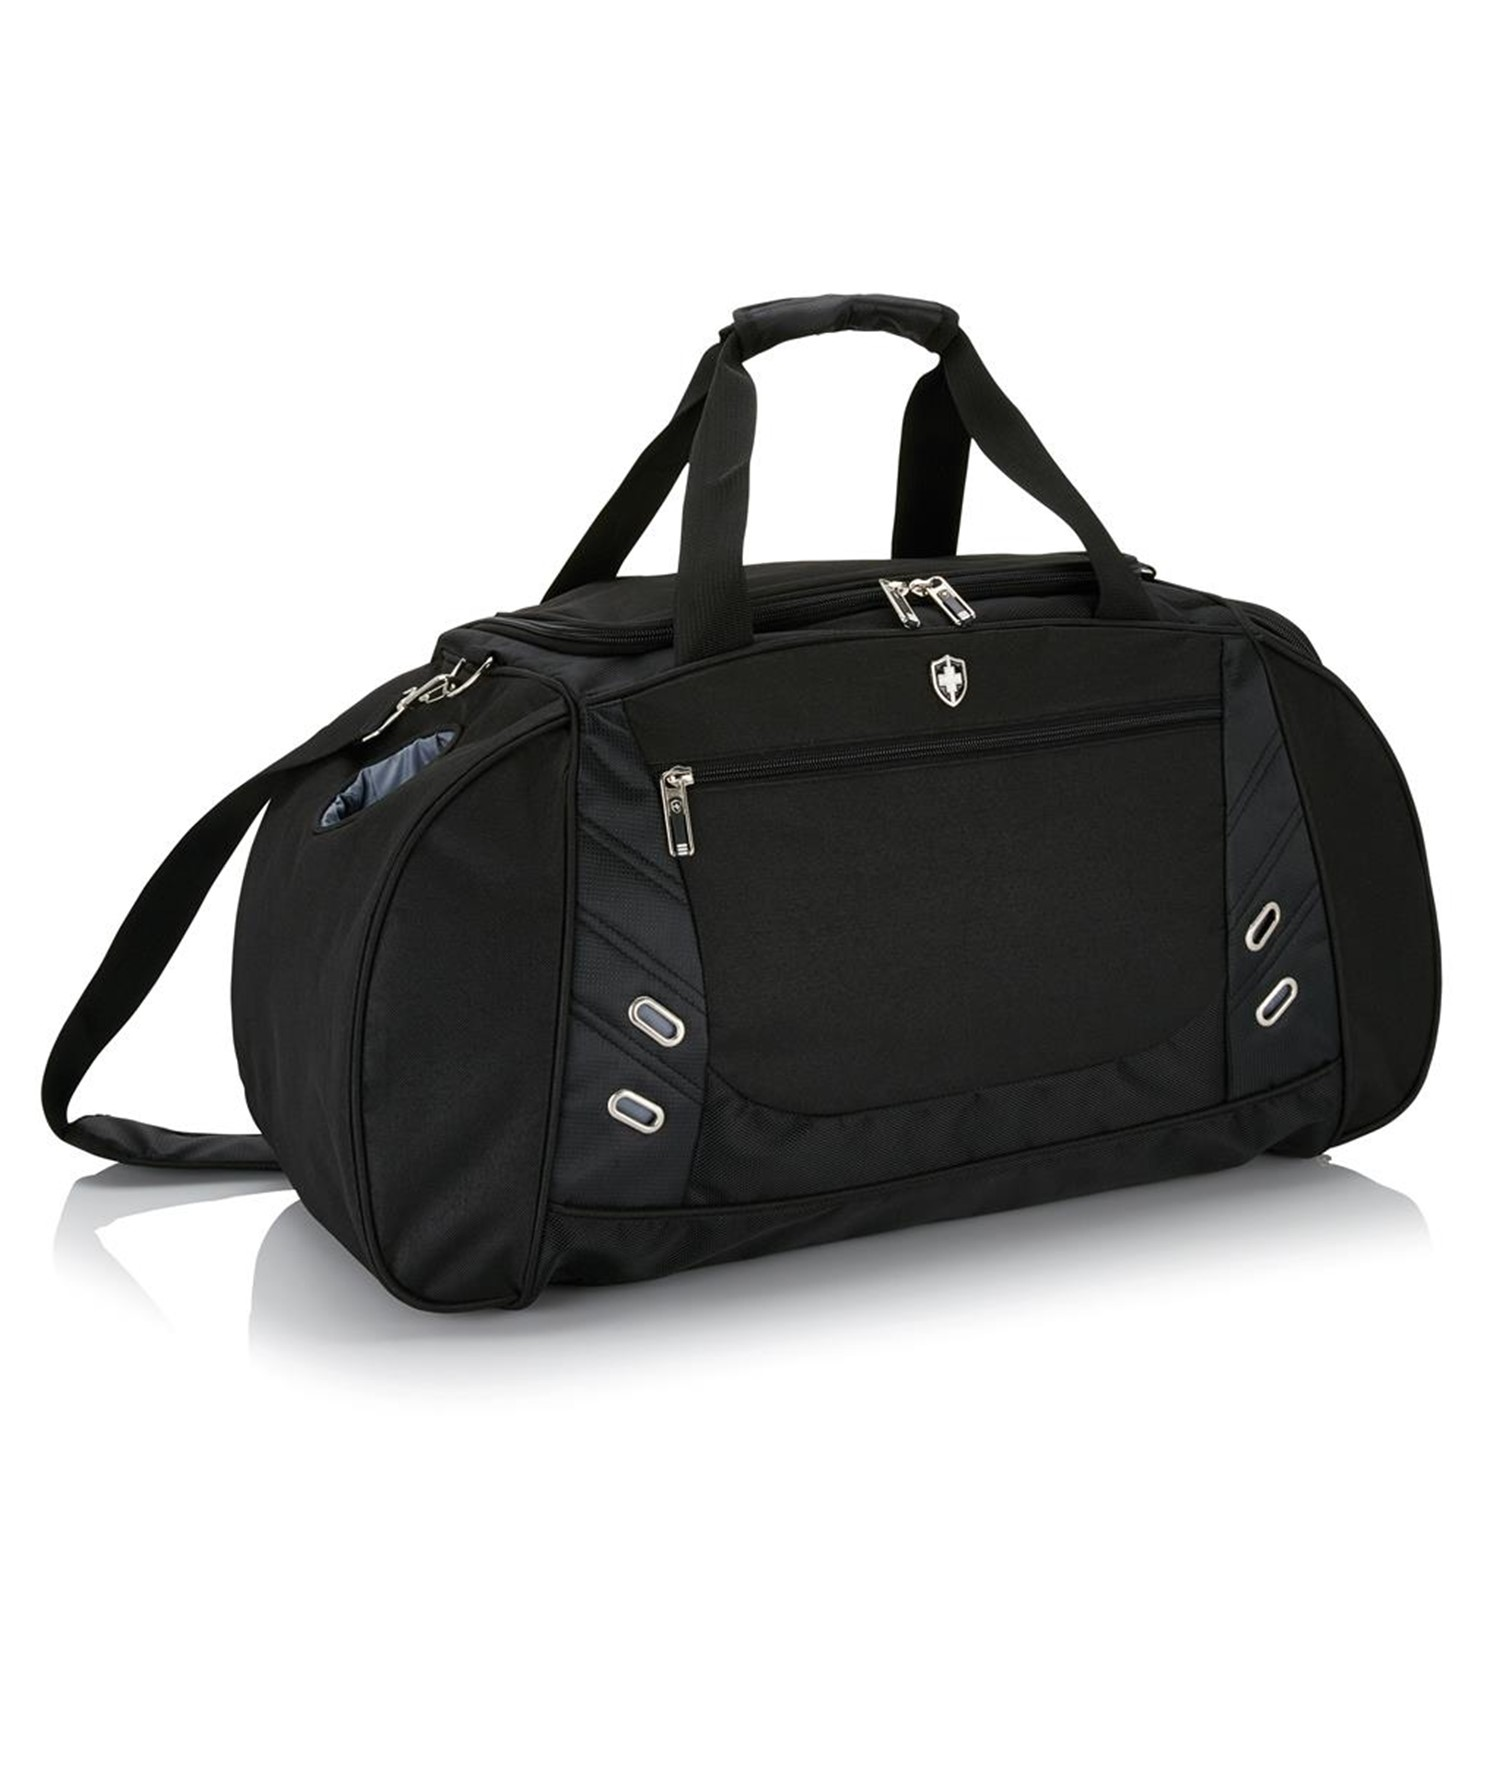 SAC DE SPORT/WEEKEND SWISS PEAK, NOIR